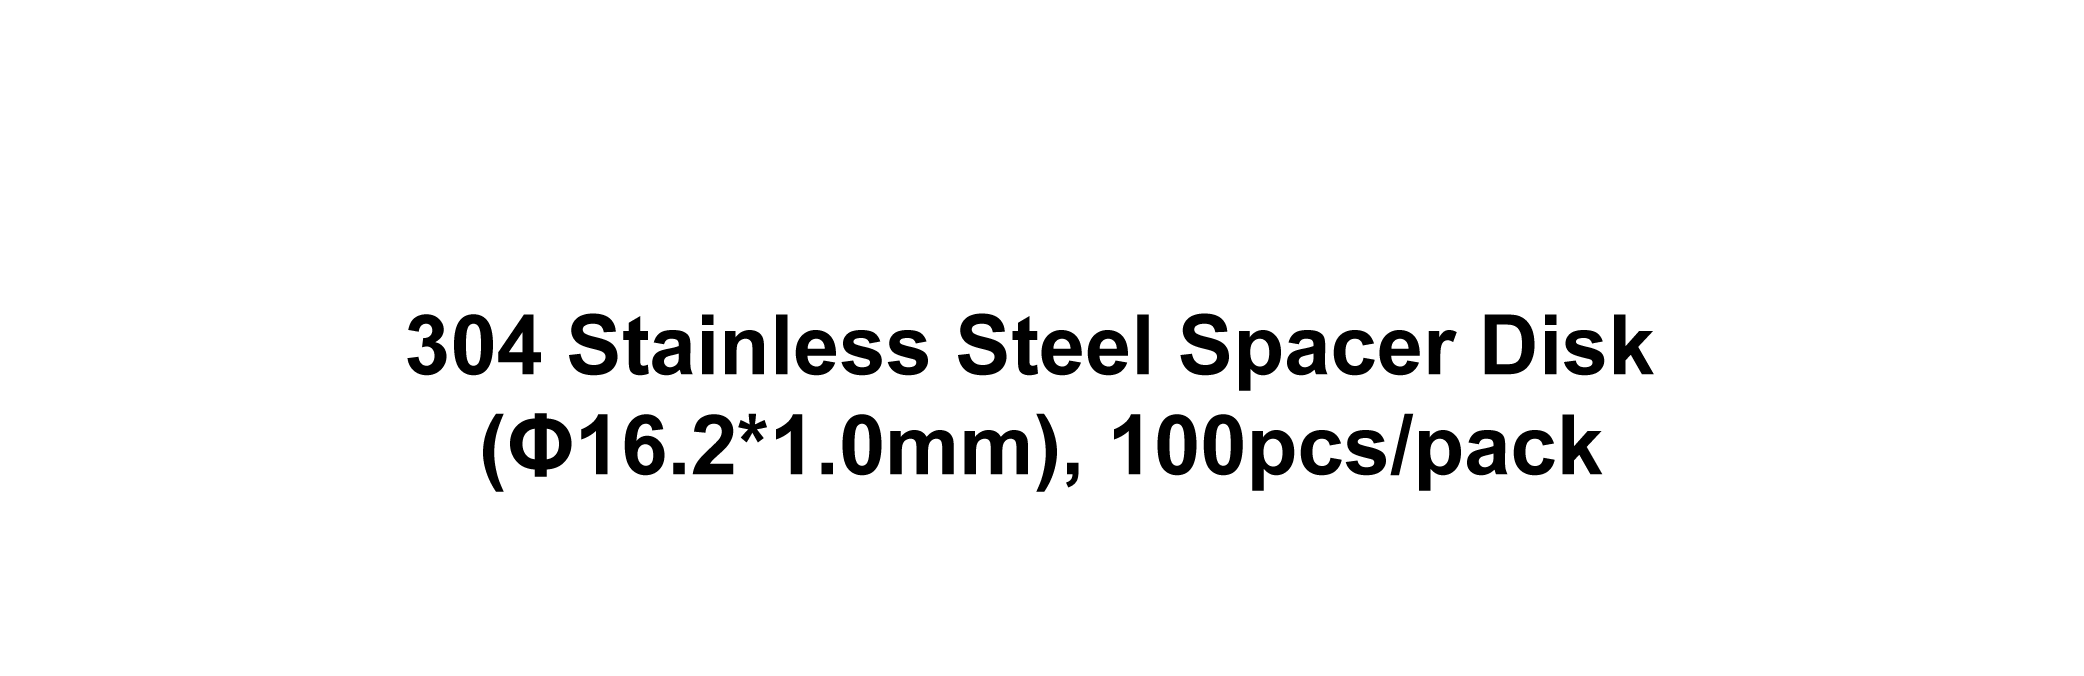 304 Stainless Steel Spacer Disk (Φ16.2*1.0mm), 100pcs/pack